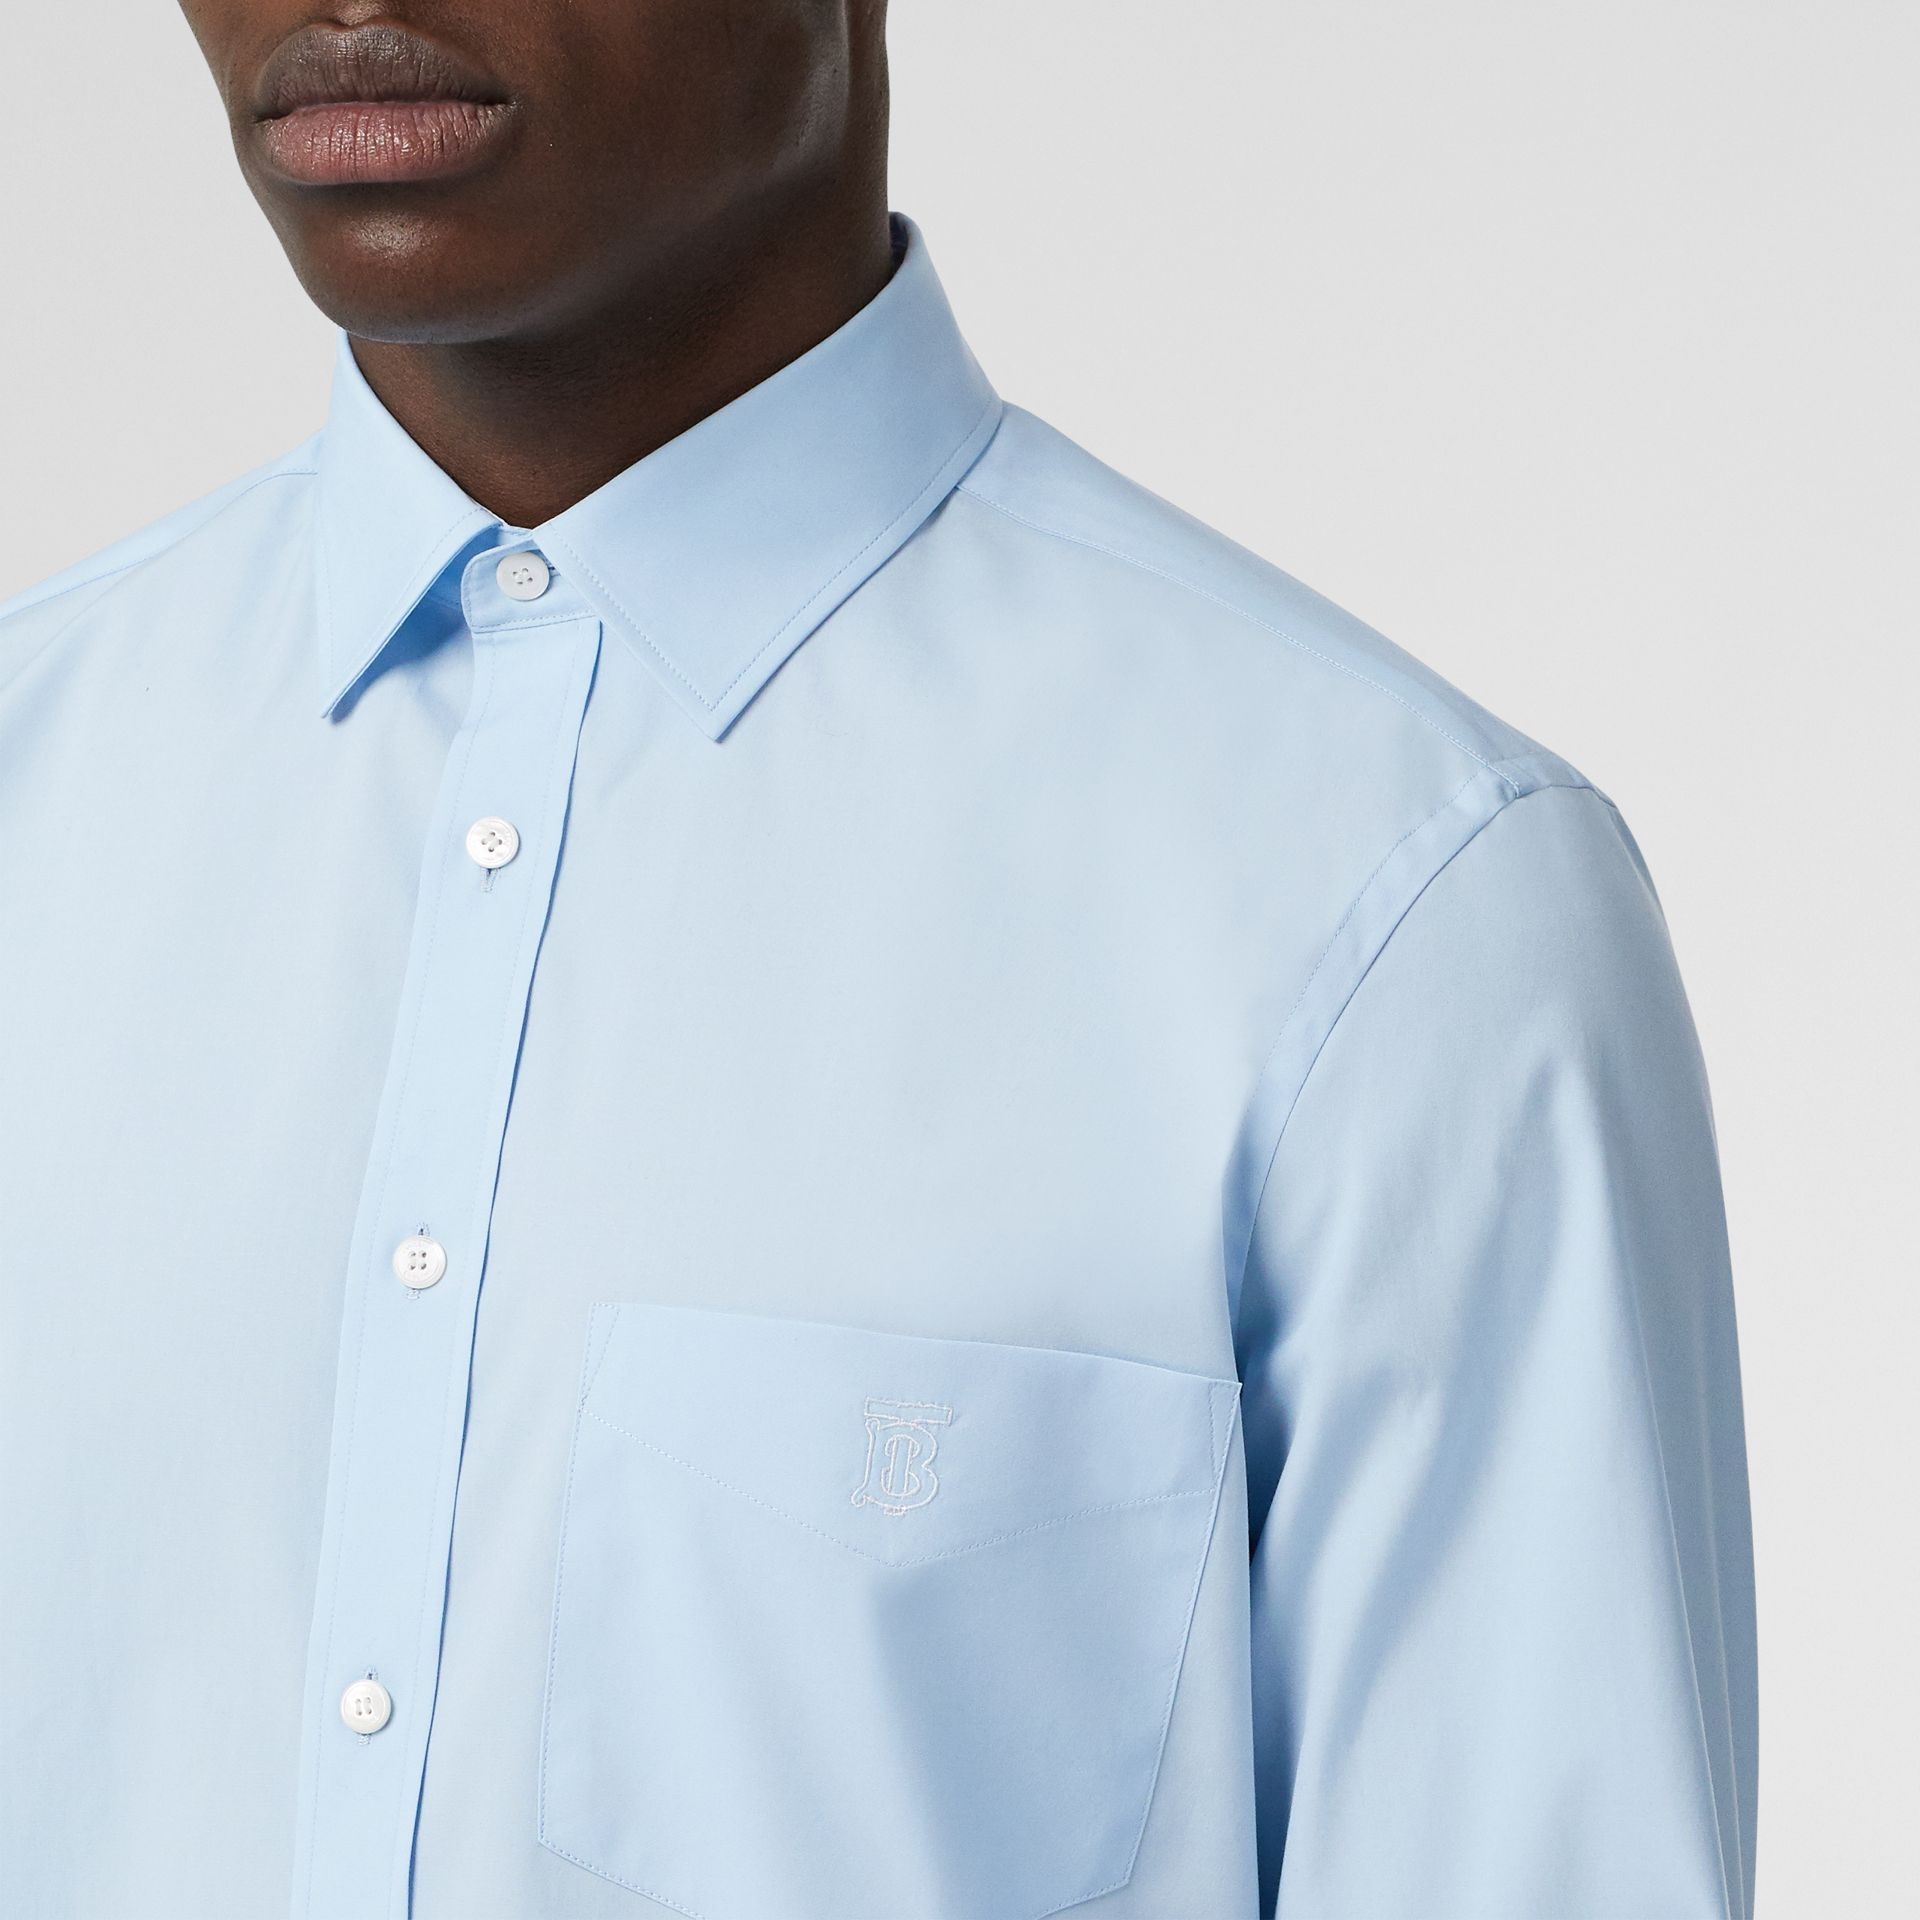 Monogram Motif Stretch Cotton Poplin Shirt in Pale Blue - Men | Burberry Canada - gallery image 1